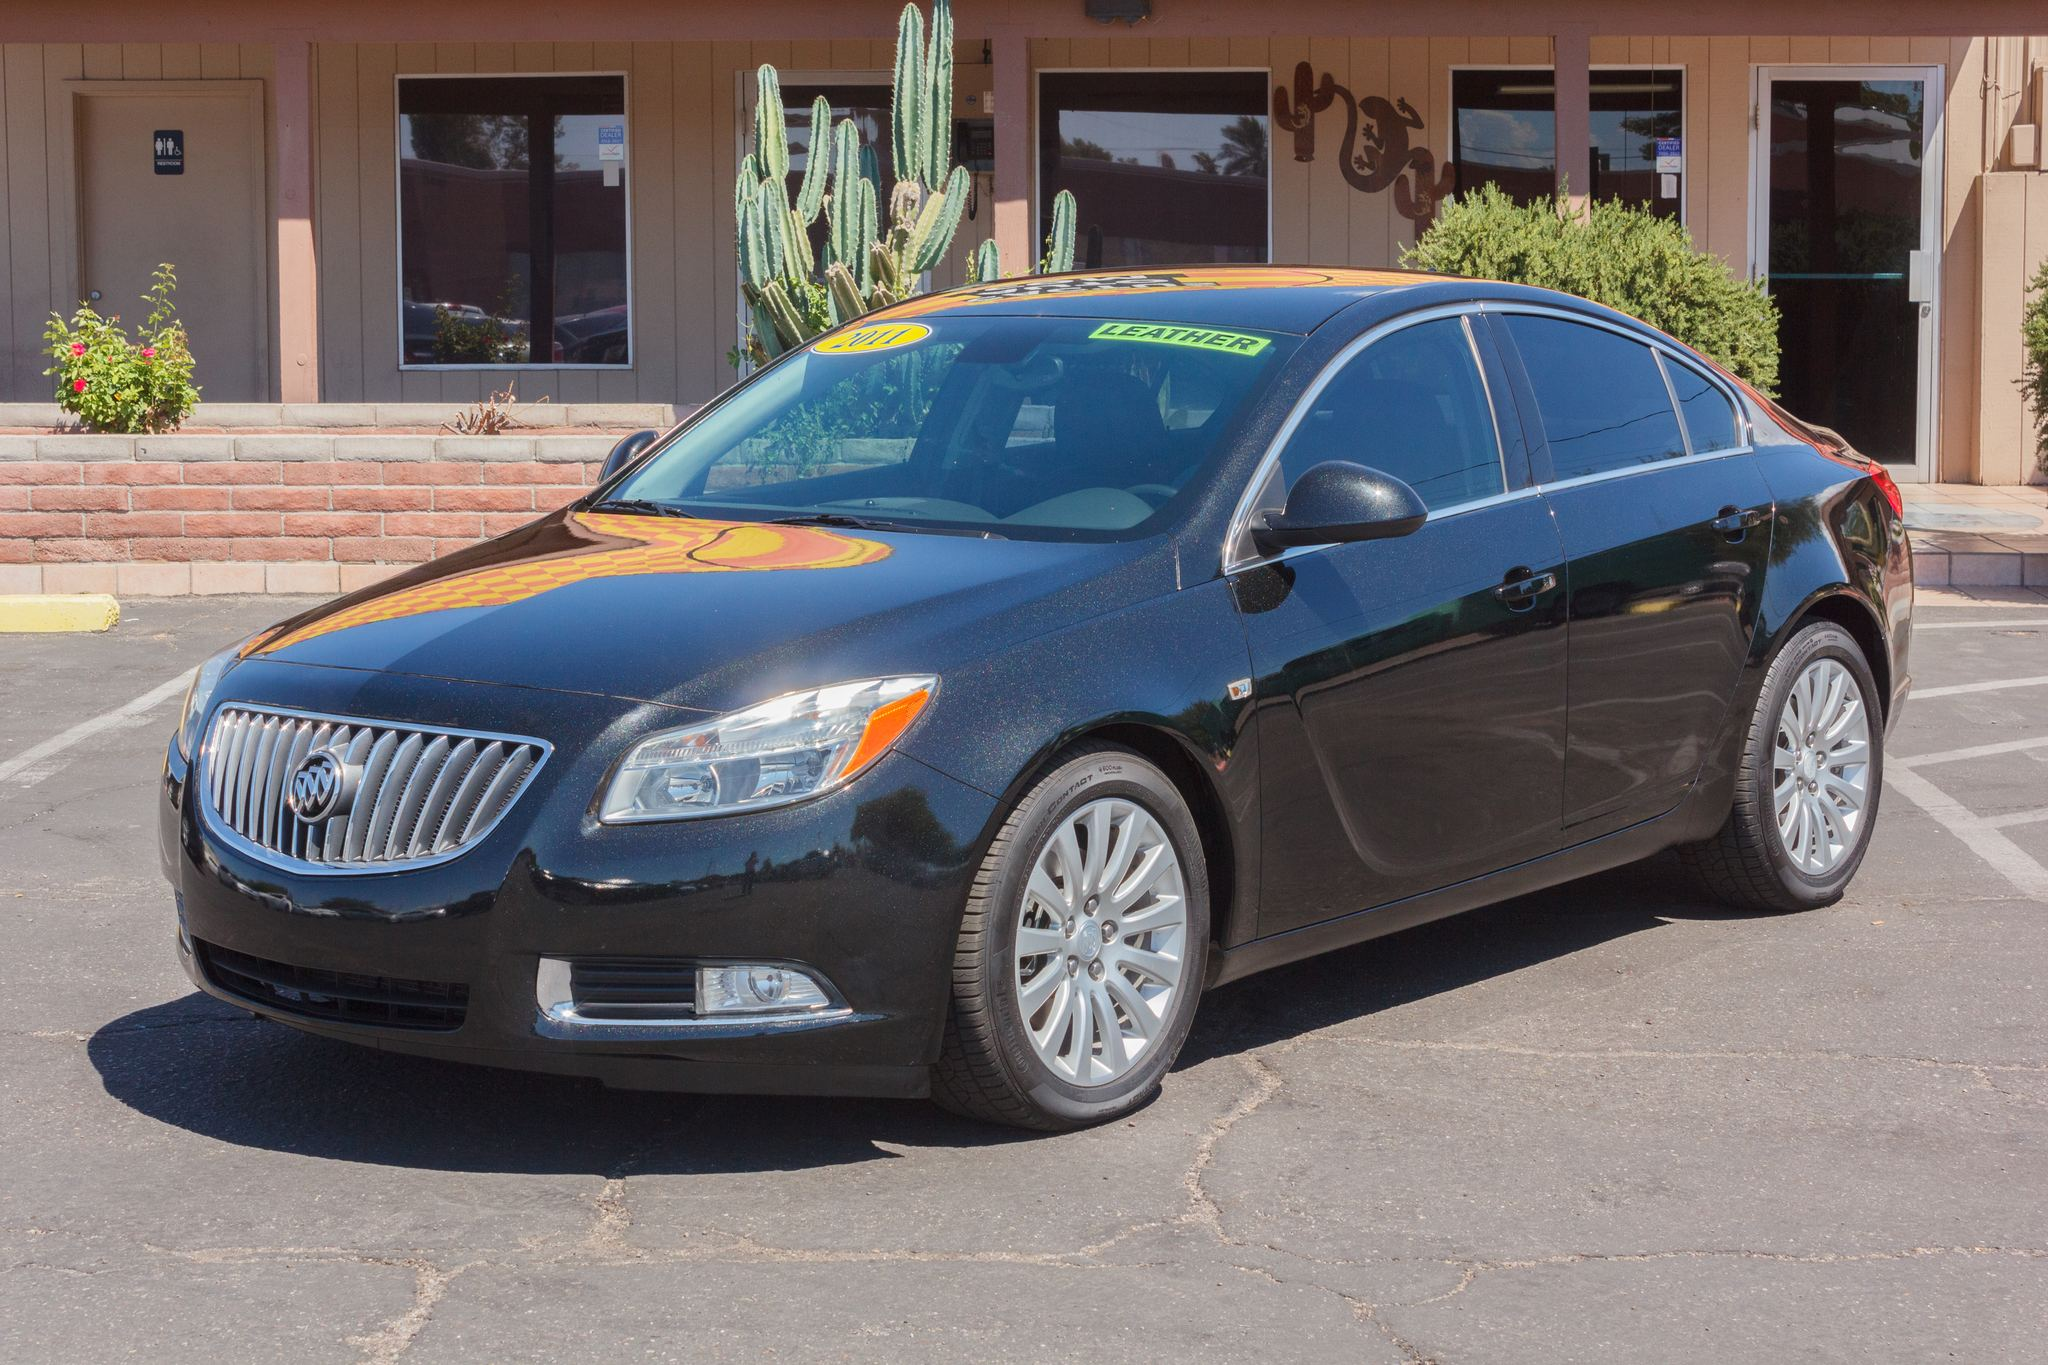 Photo of 2011 Buick Regal 4d Sedan CXL Turbo TO1